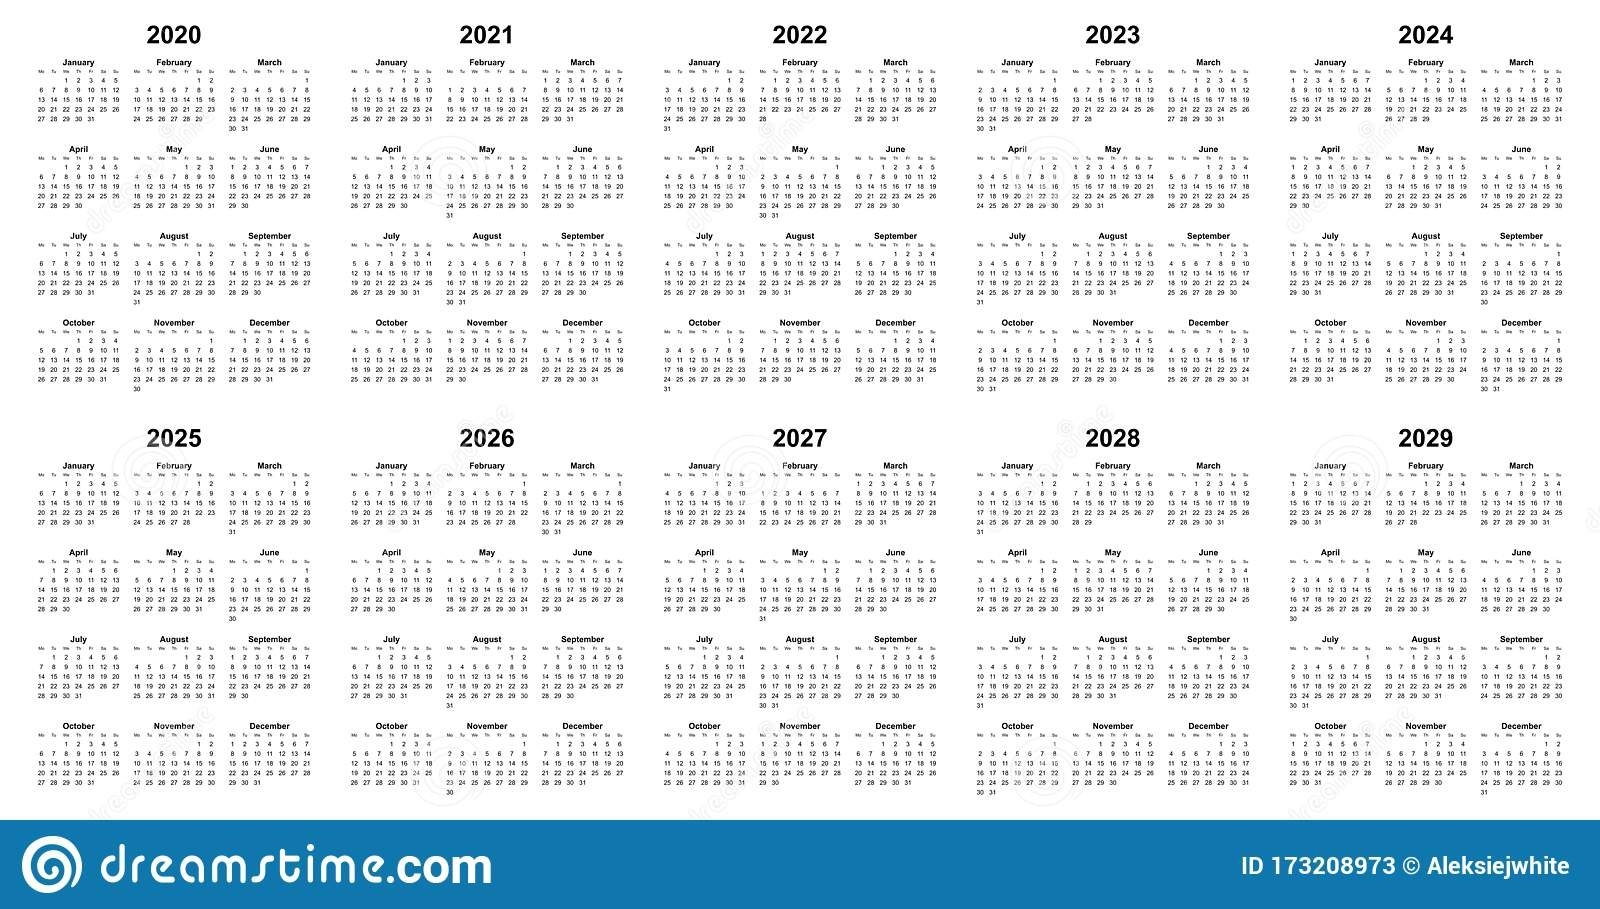 Simple Editable Vector Calendars For Year 2020 2021 2022 2023 2024 2025 2026 2027 2028 2029 regarding October Calendars For 2022 2023 2024 And 2025 Graphics